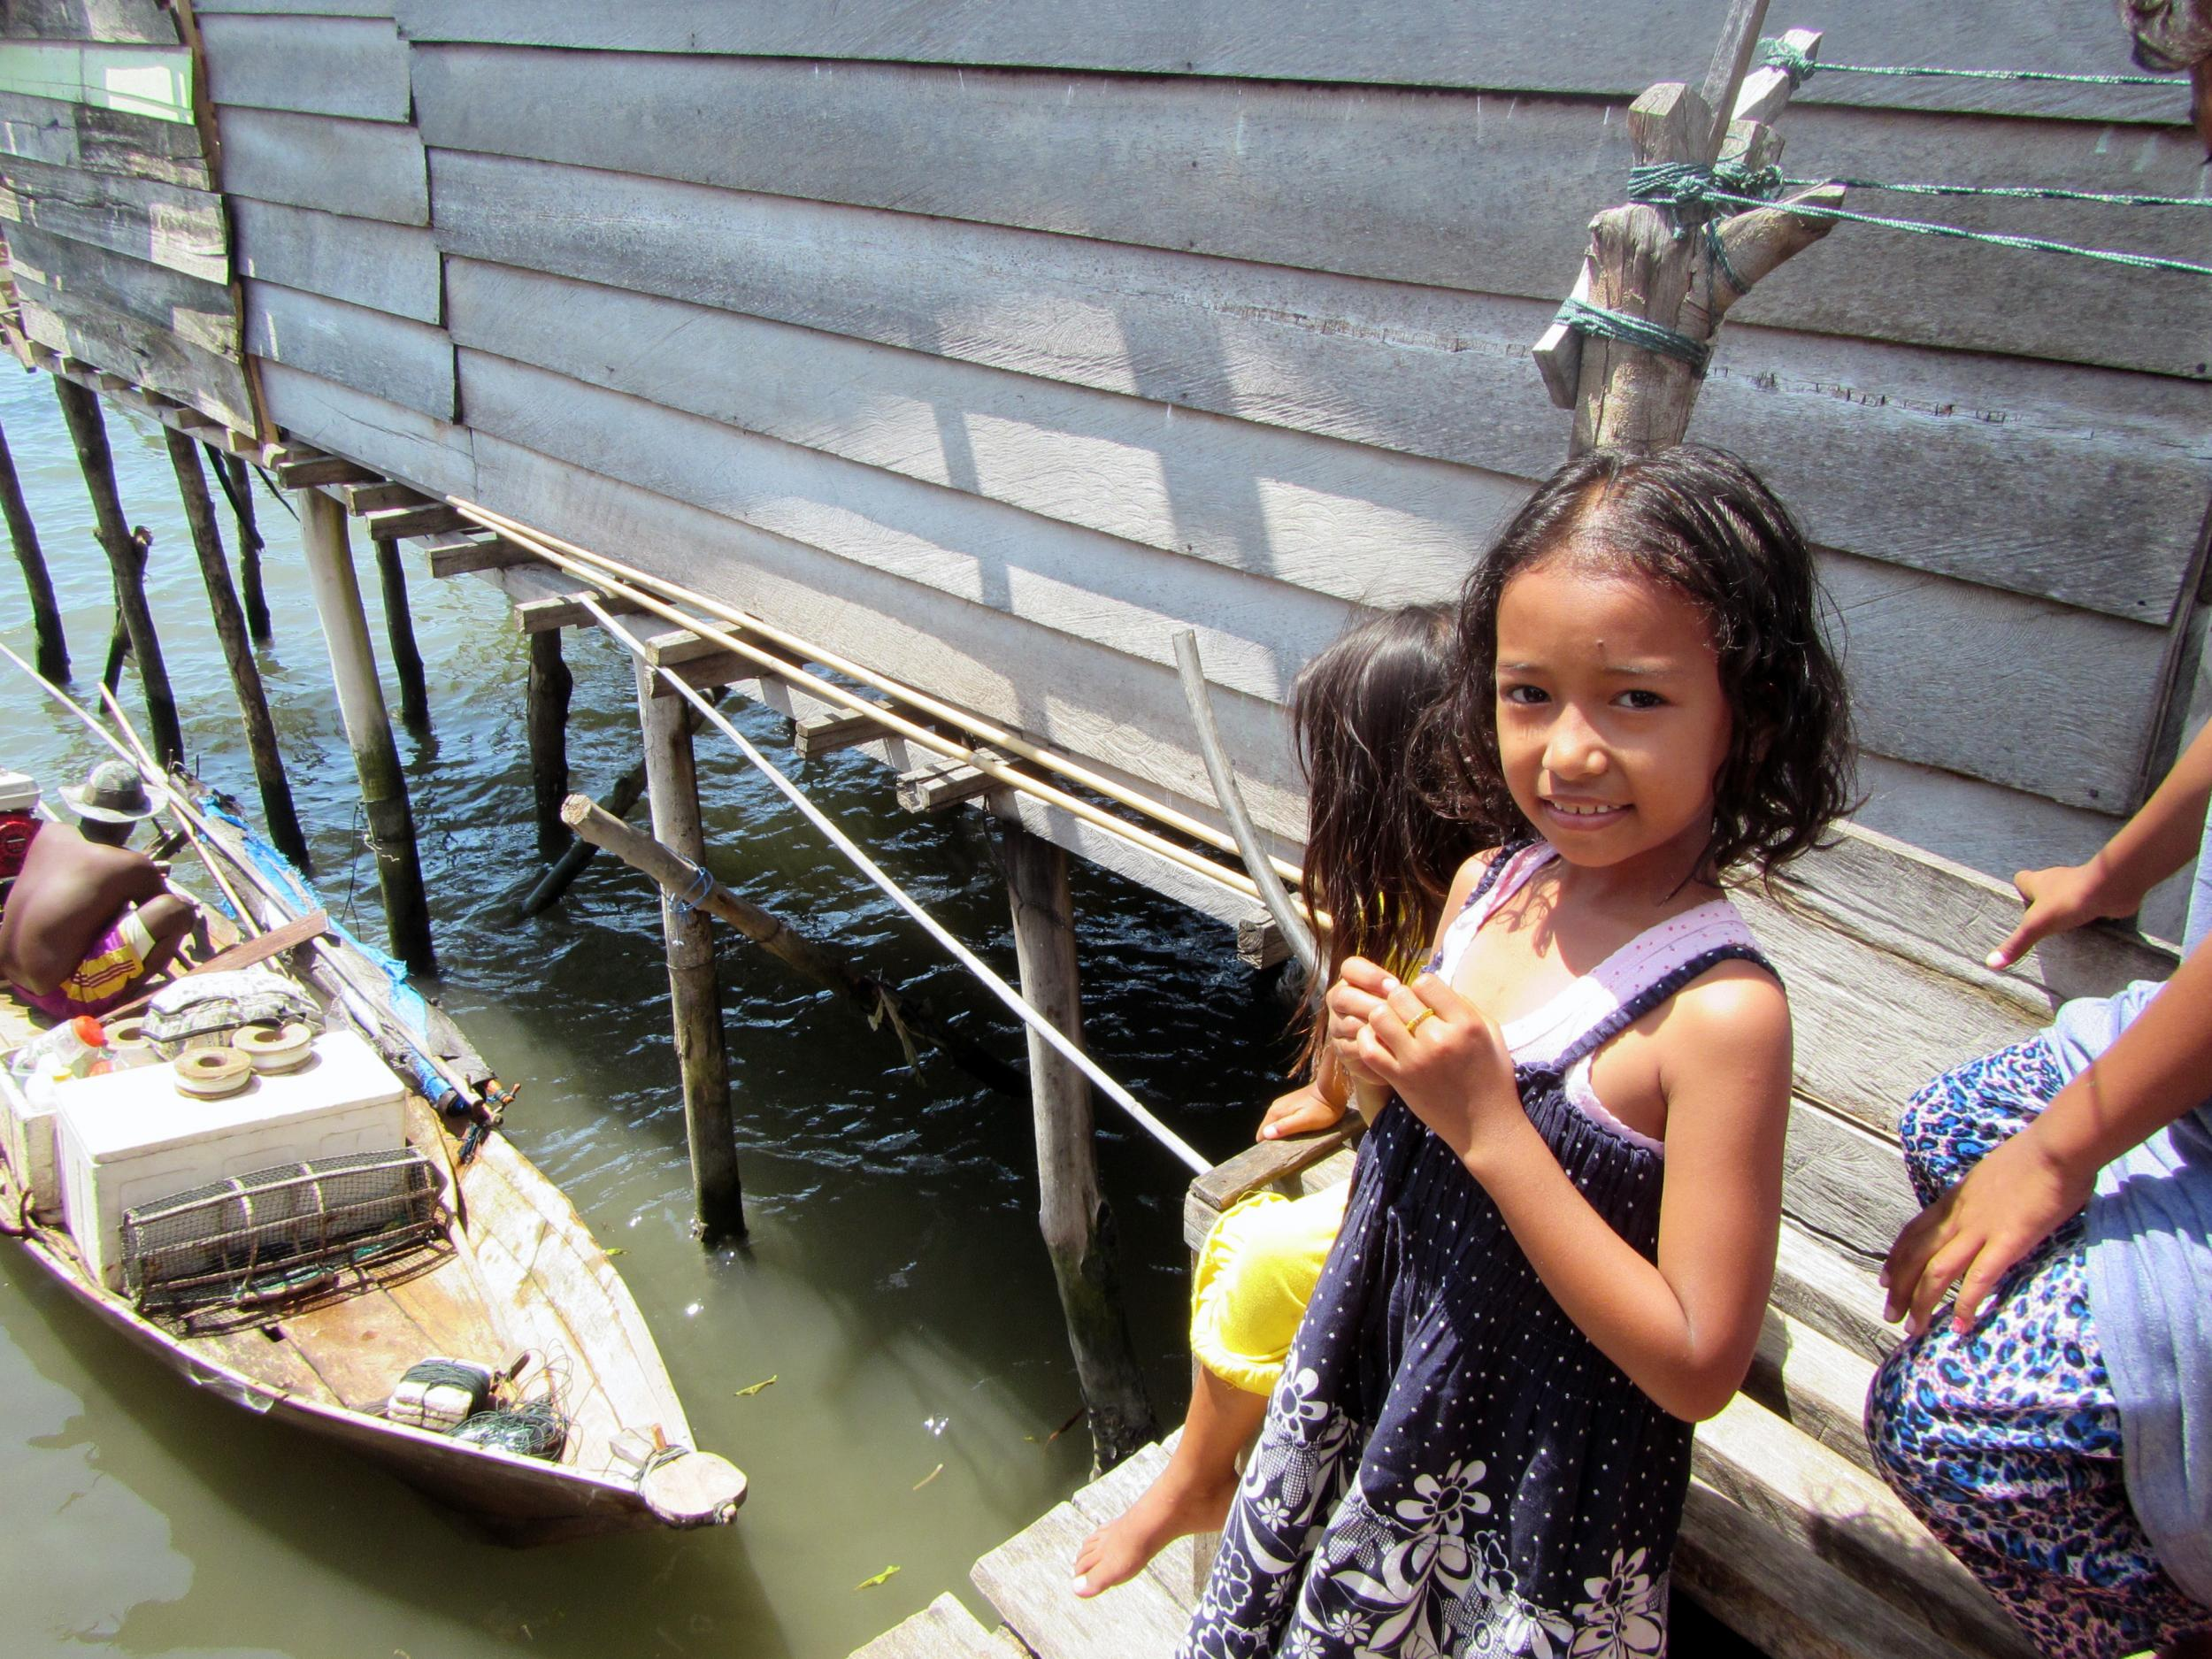 A young Bajau girl looks on in excitement as her father, a traditional Bajau diver, returns to Jaya Bakti from a two-week fishing trip